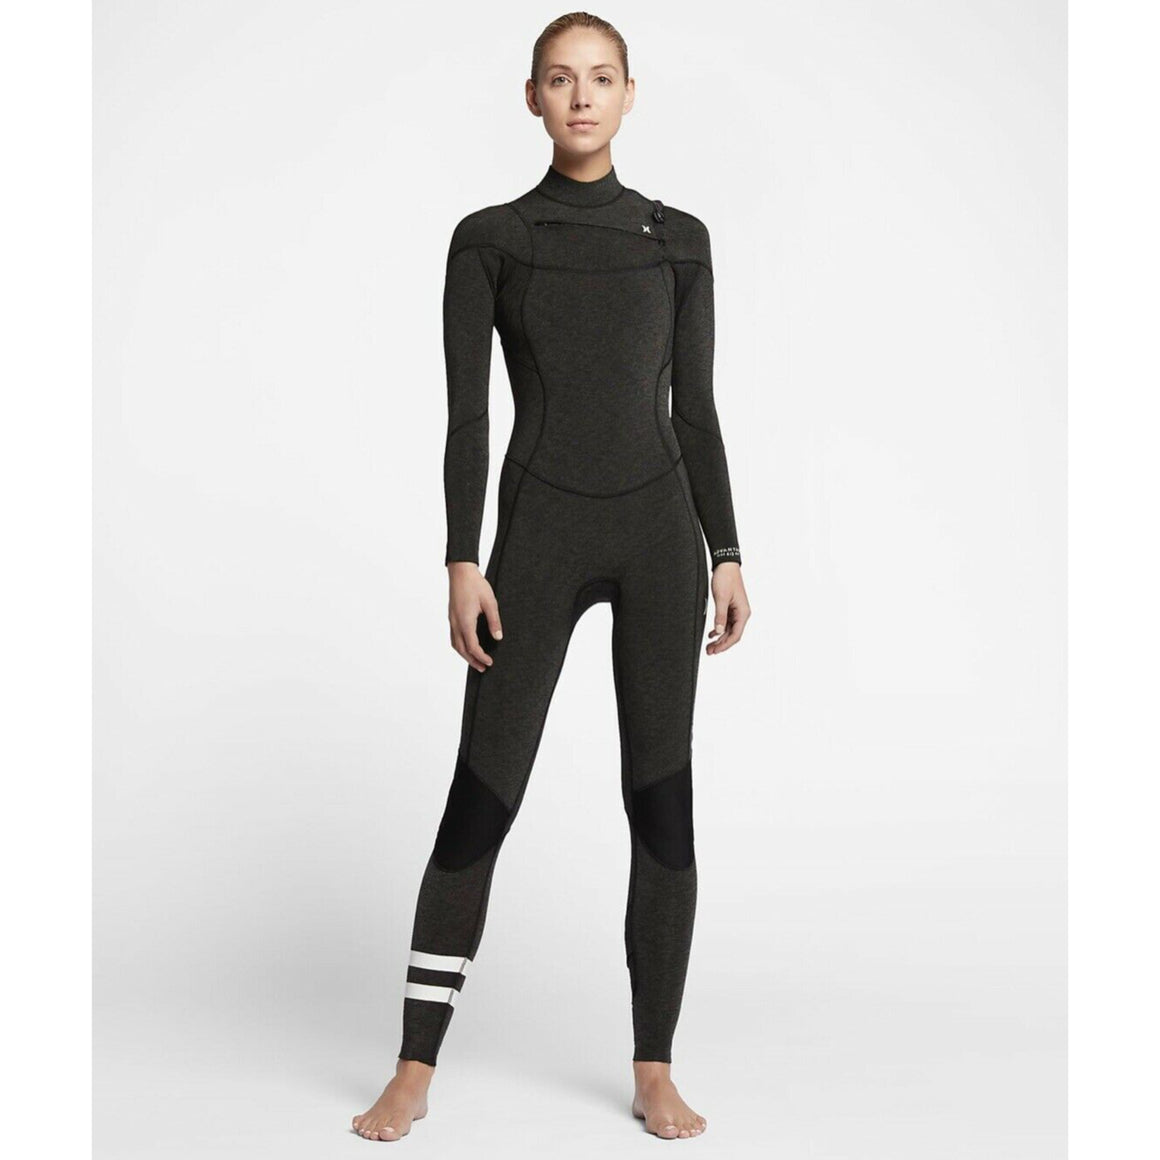 Hurley Women's Wetsuit - Advantage Plus 4/3